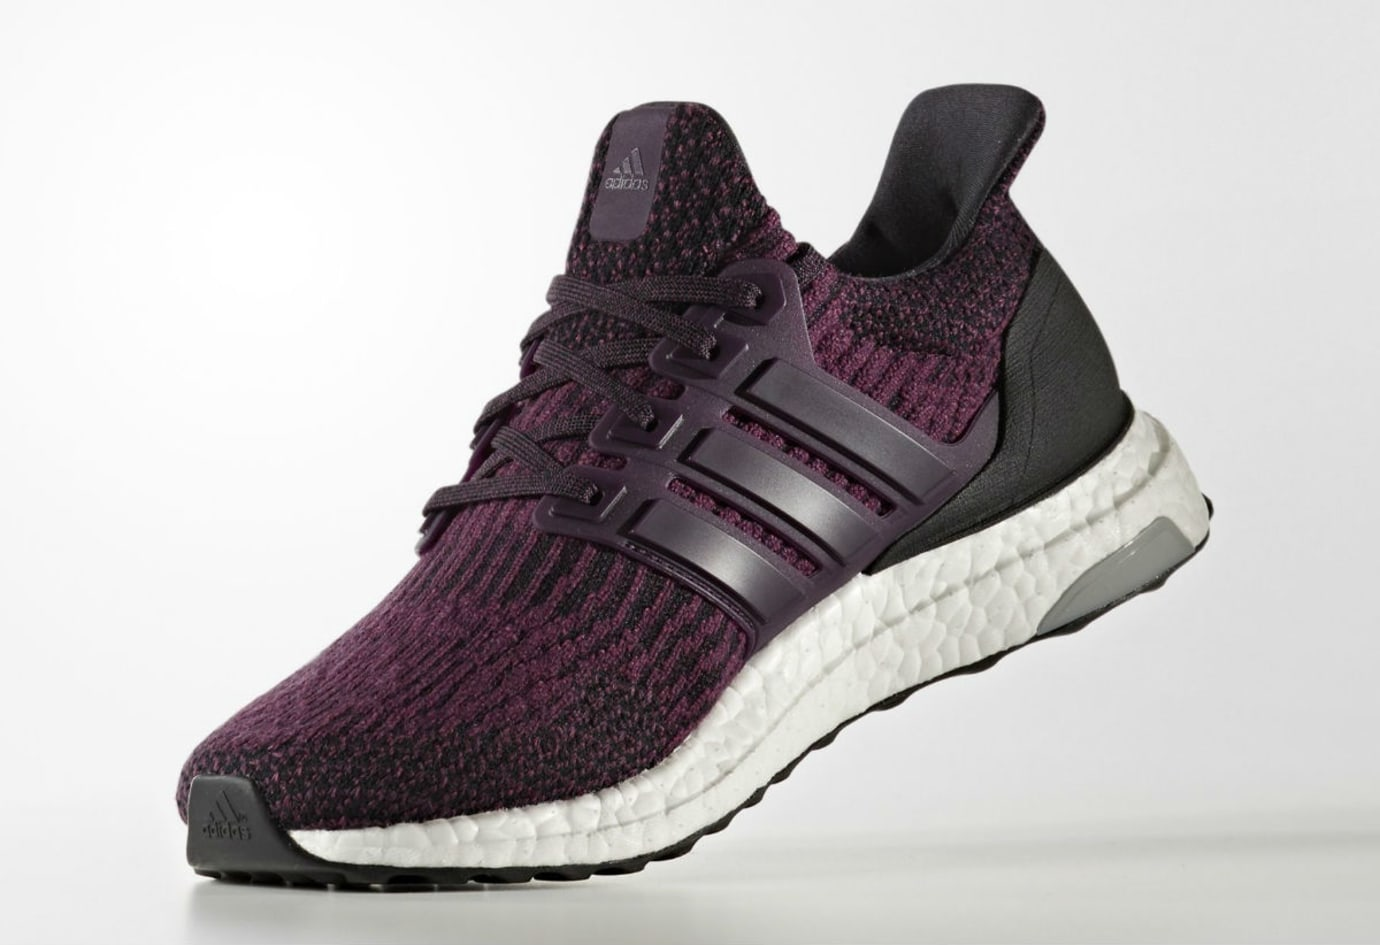 cc7dca809b9 Adidas Women s Ultra Boost 3.0 Red Night Release Date Medial S82058